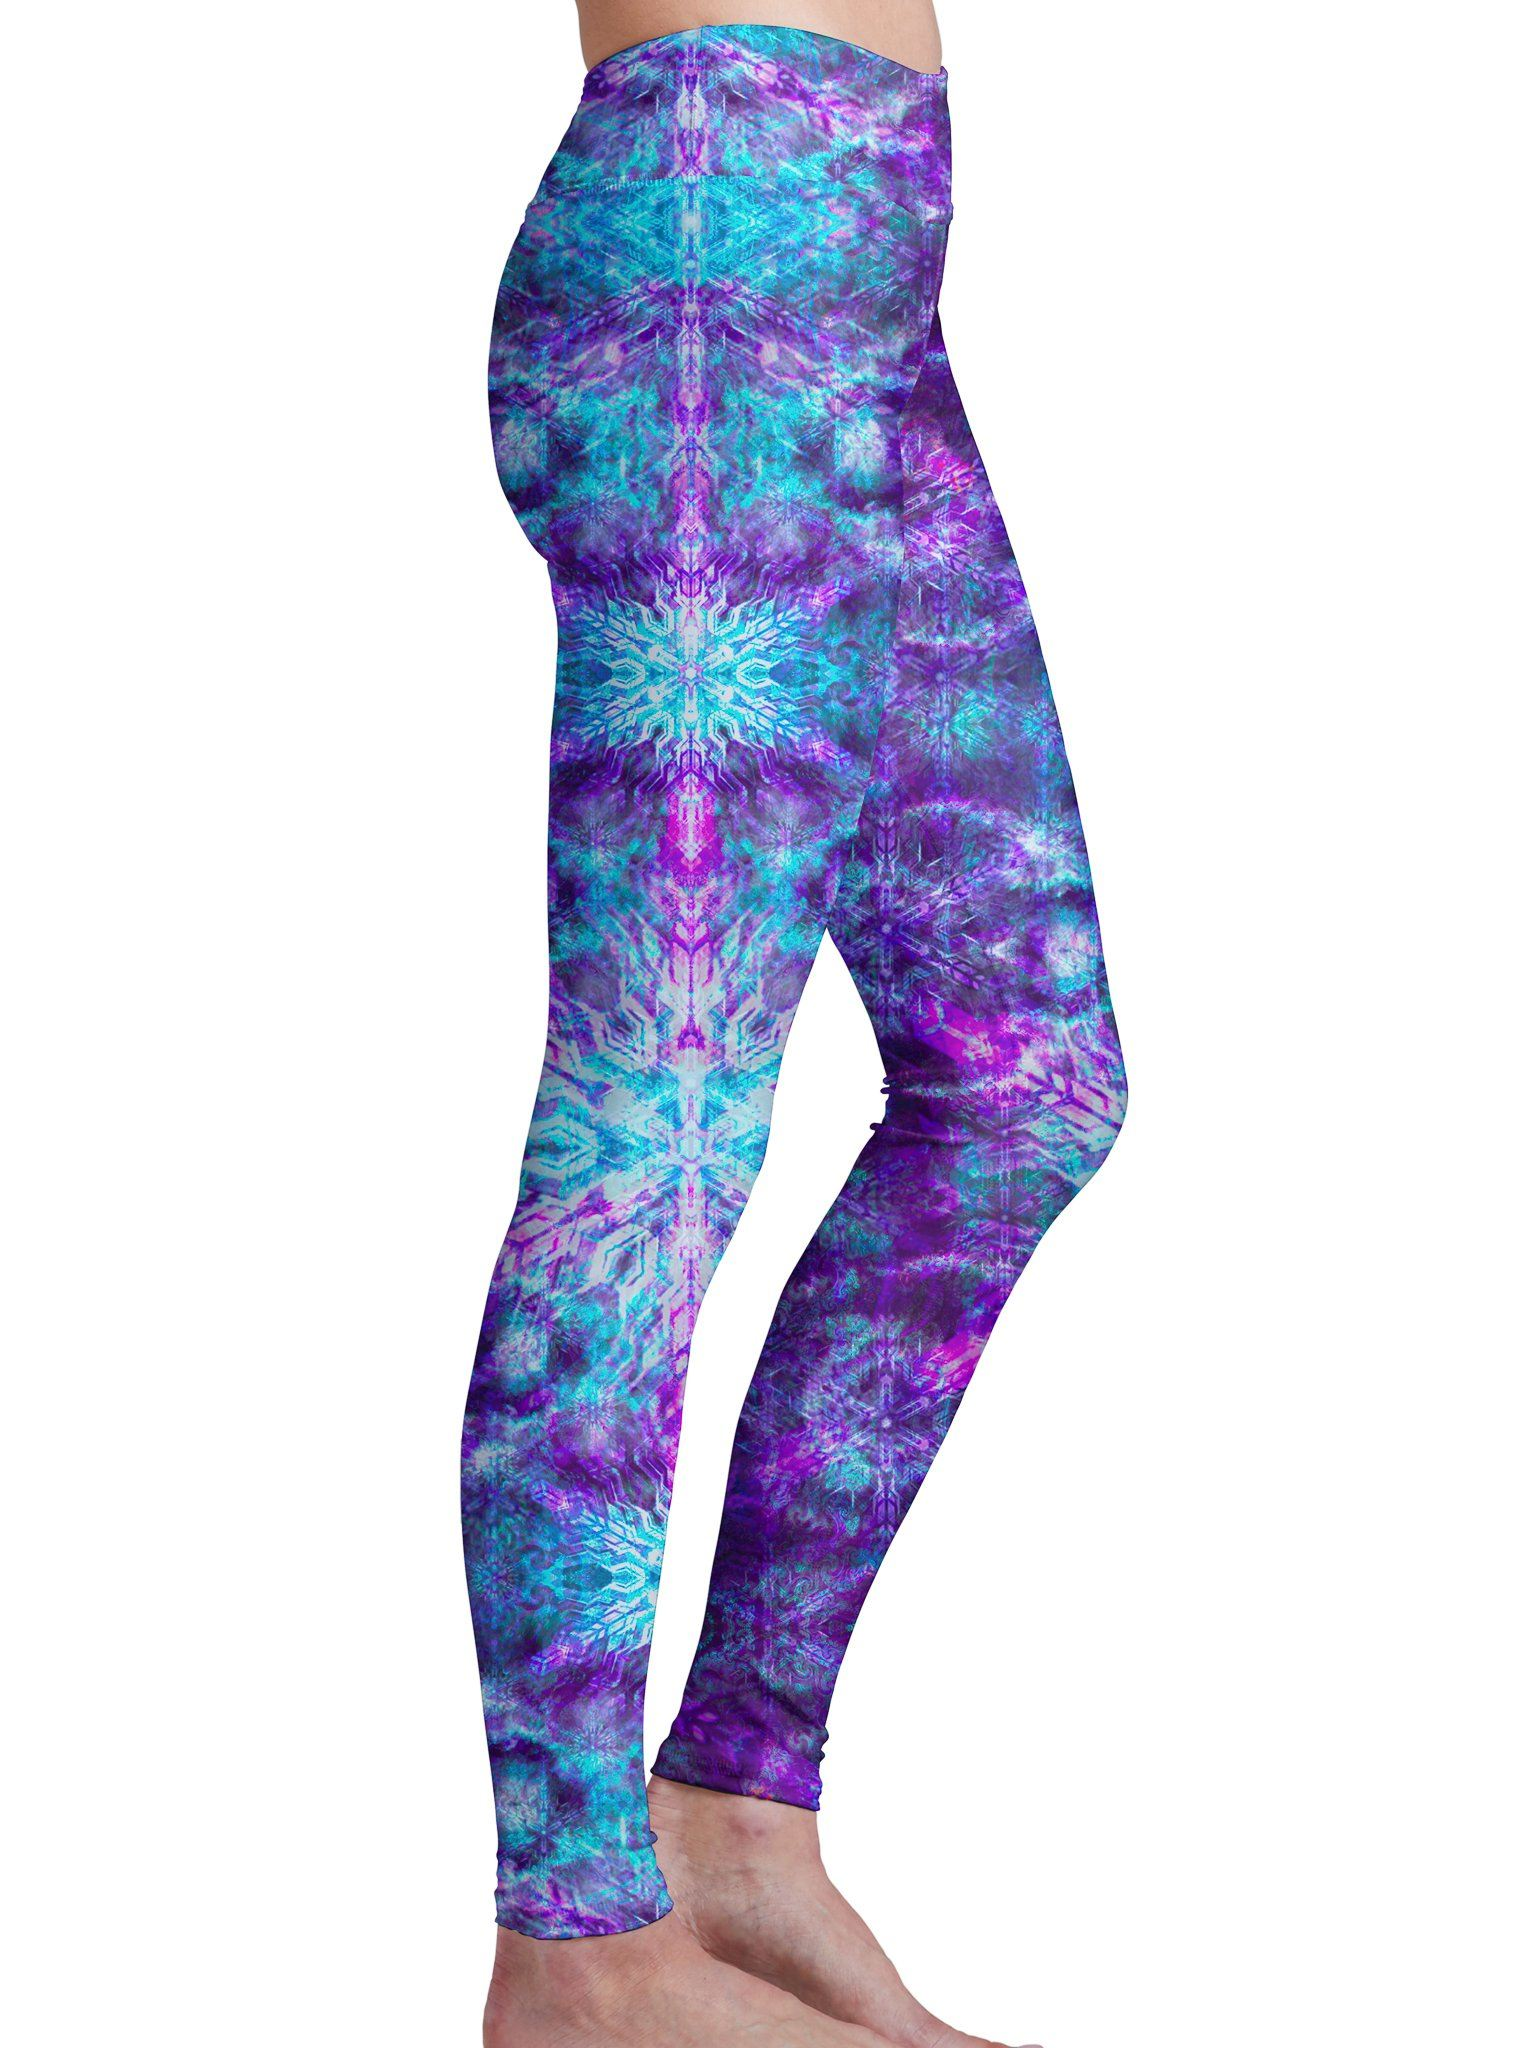 Mindfield Leggings Leggings Electro Threads